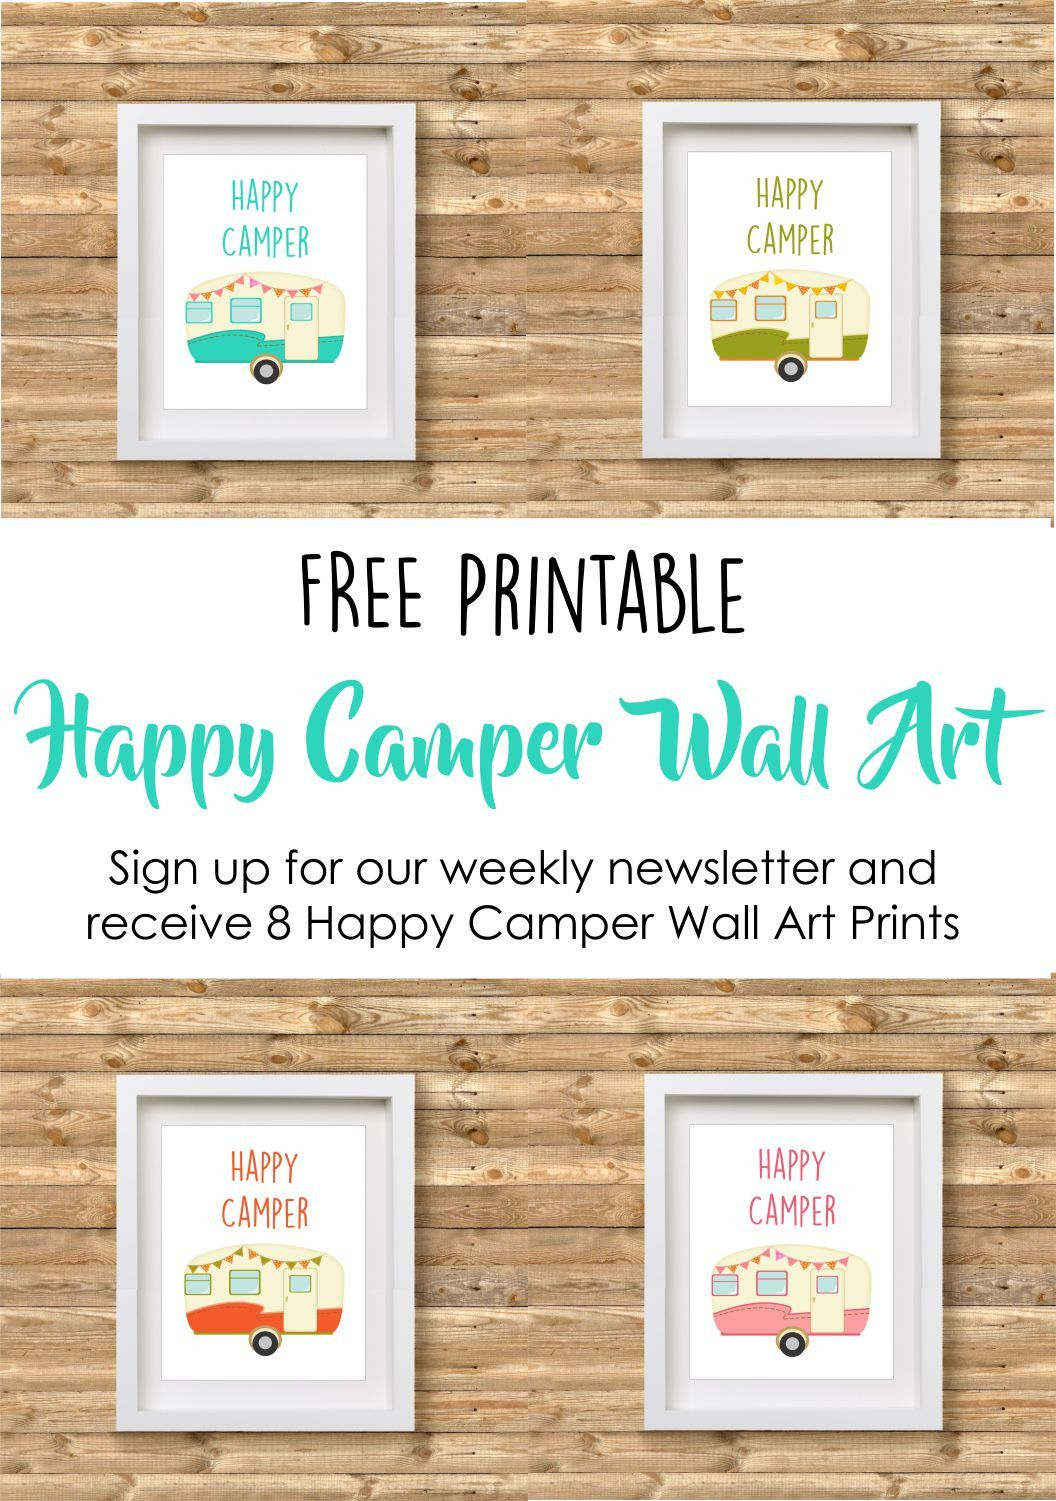 Free Happy Camper Printable Wall Art Visit Our Blog: Www - Free Printable Camping Signs